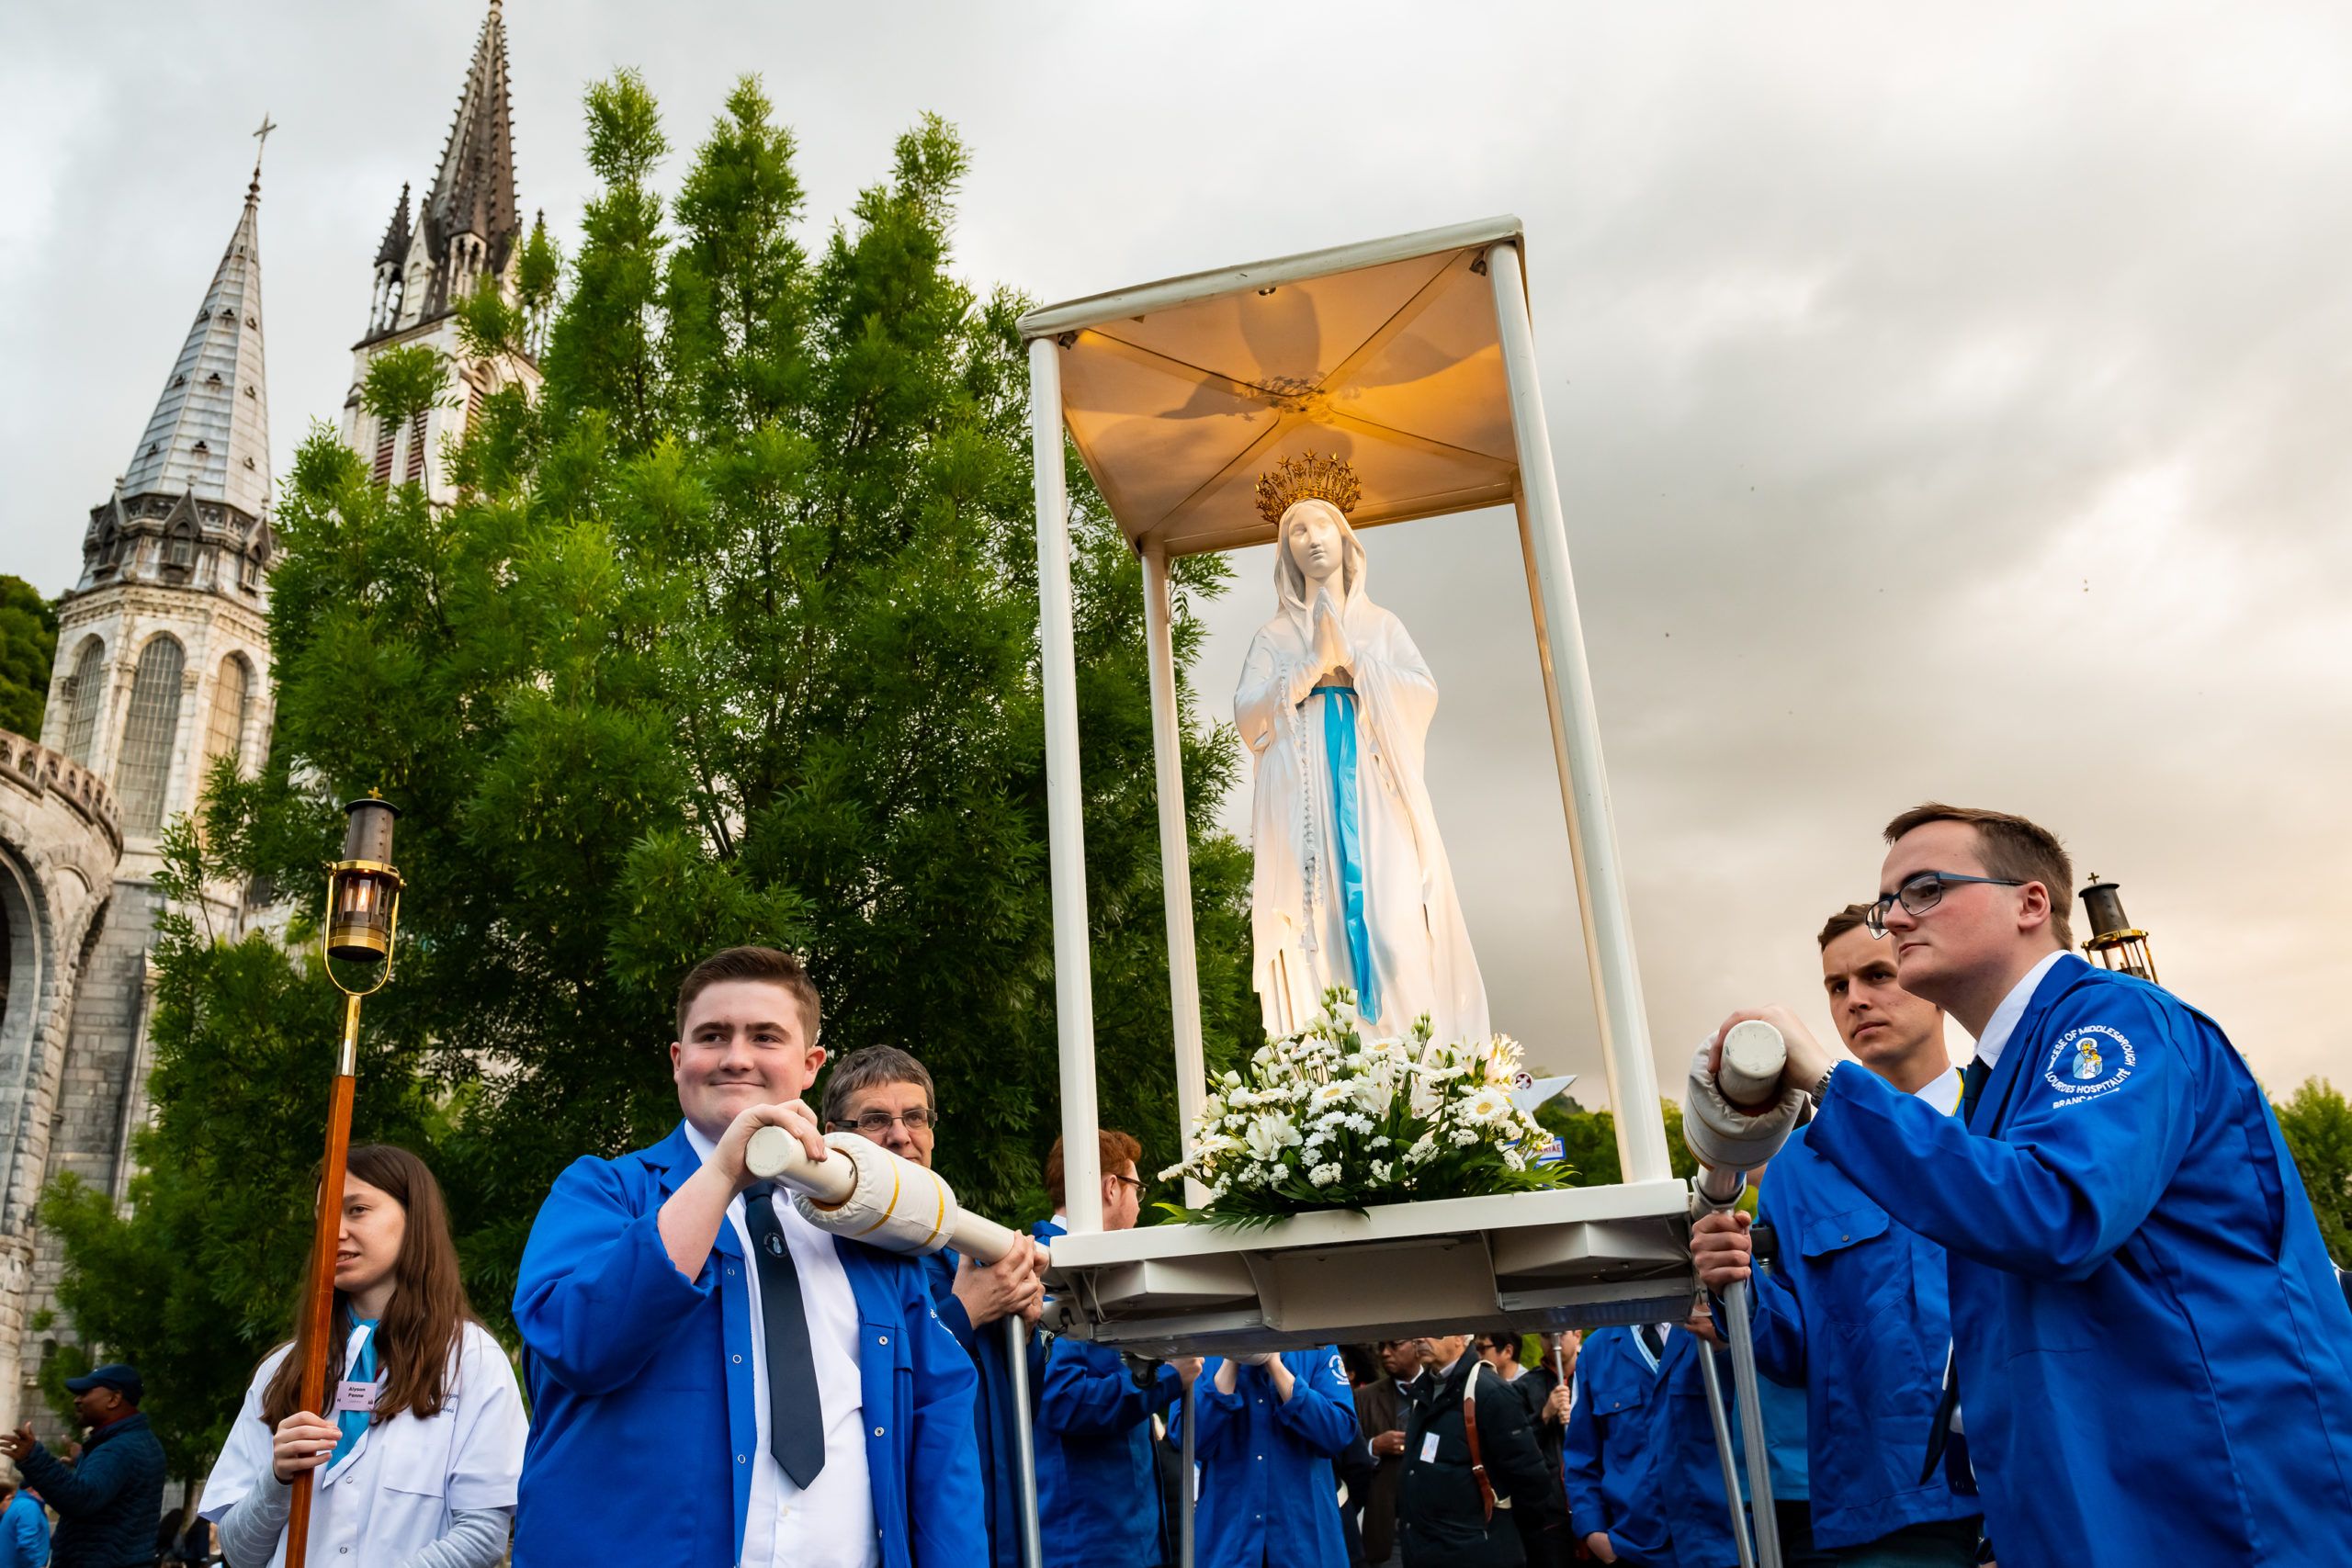 Matty Carpenter, Martin Thorpe, Kieran McIntyre and Ashley carrying the statue of Our Lady in the Torchlight Marian Procession – Photo courtesy of Lacaze, Lourdes